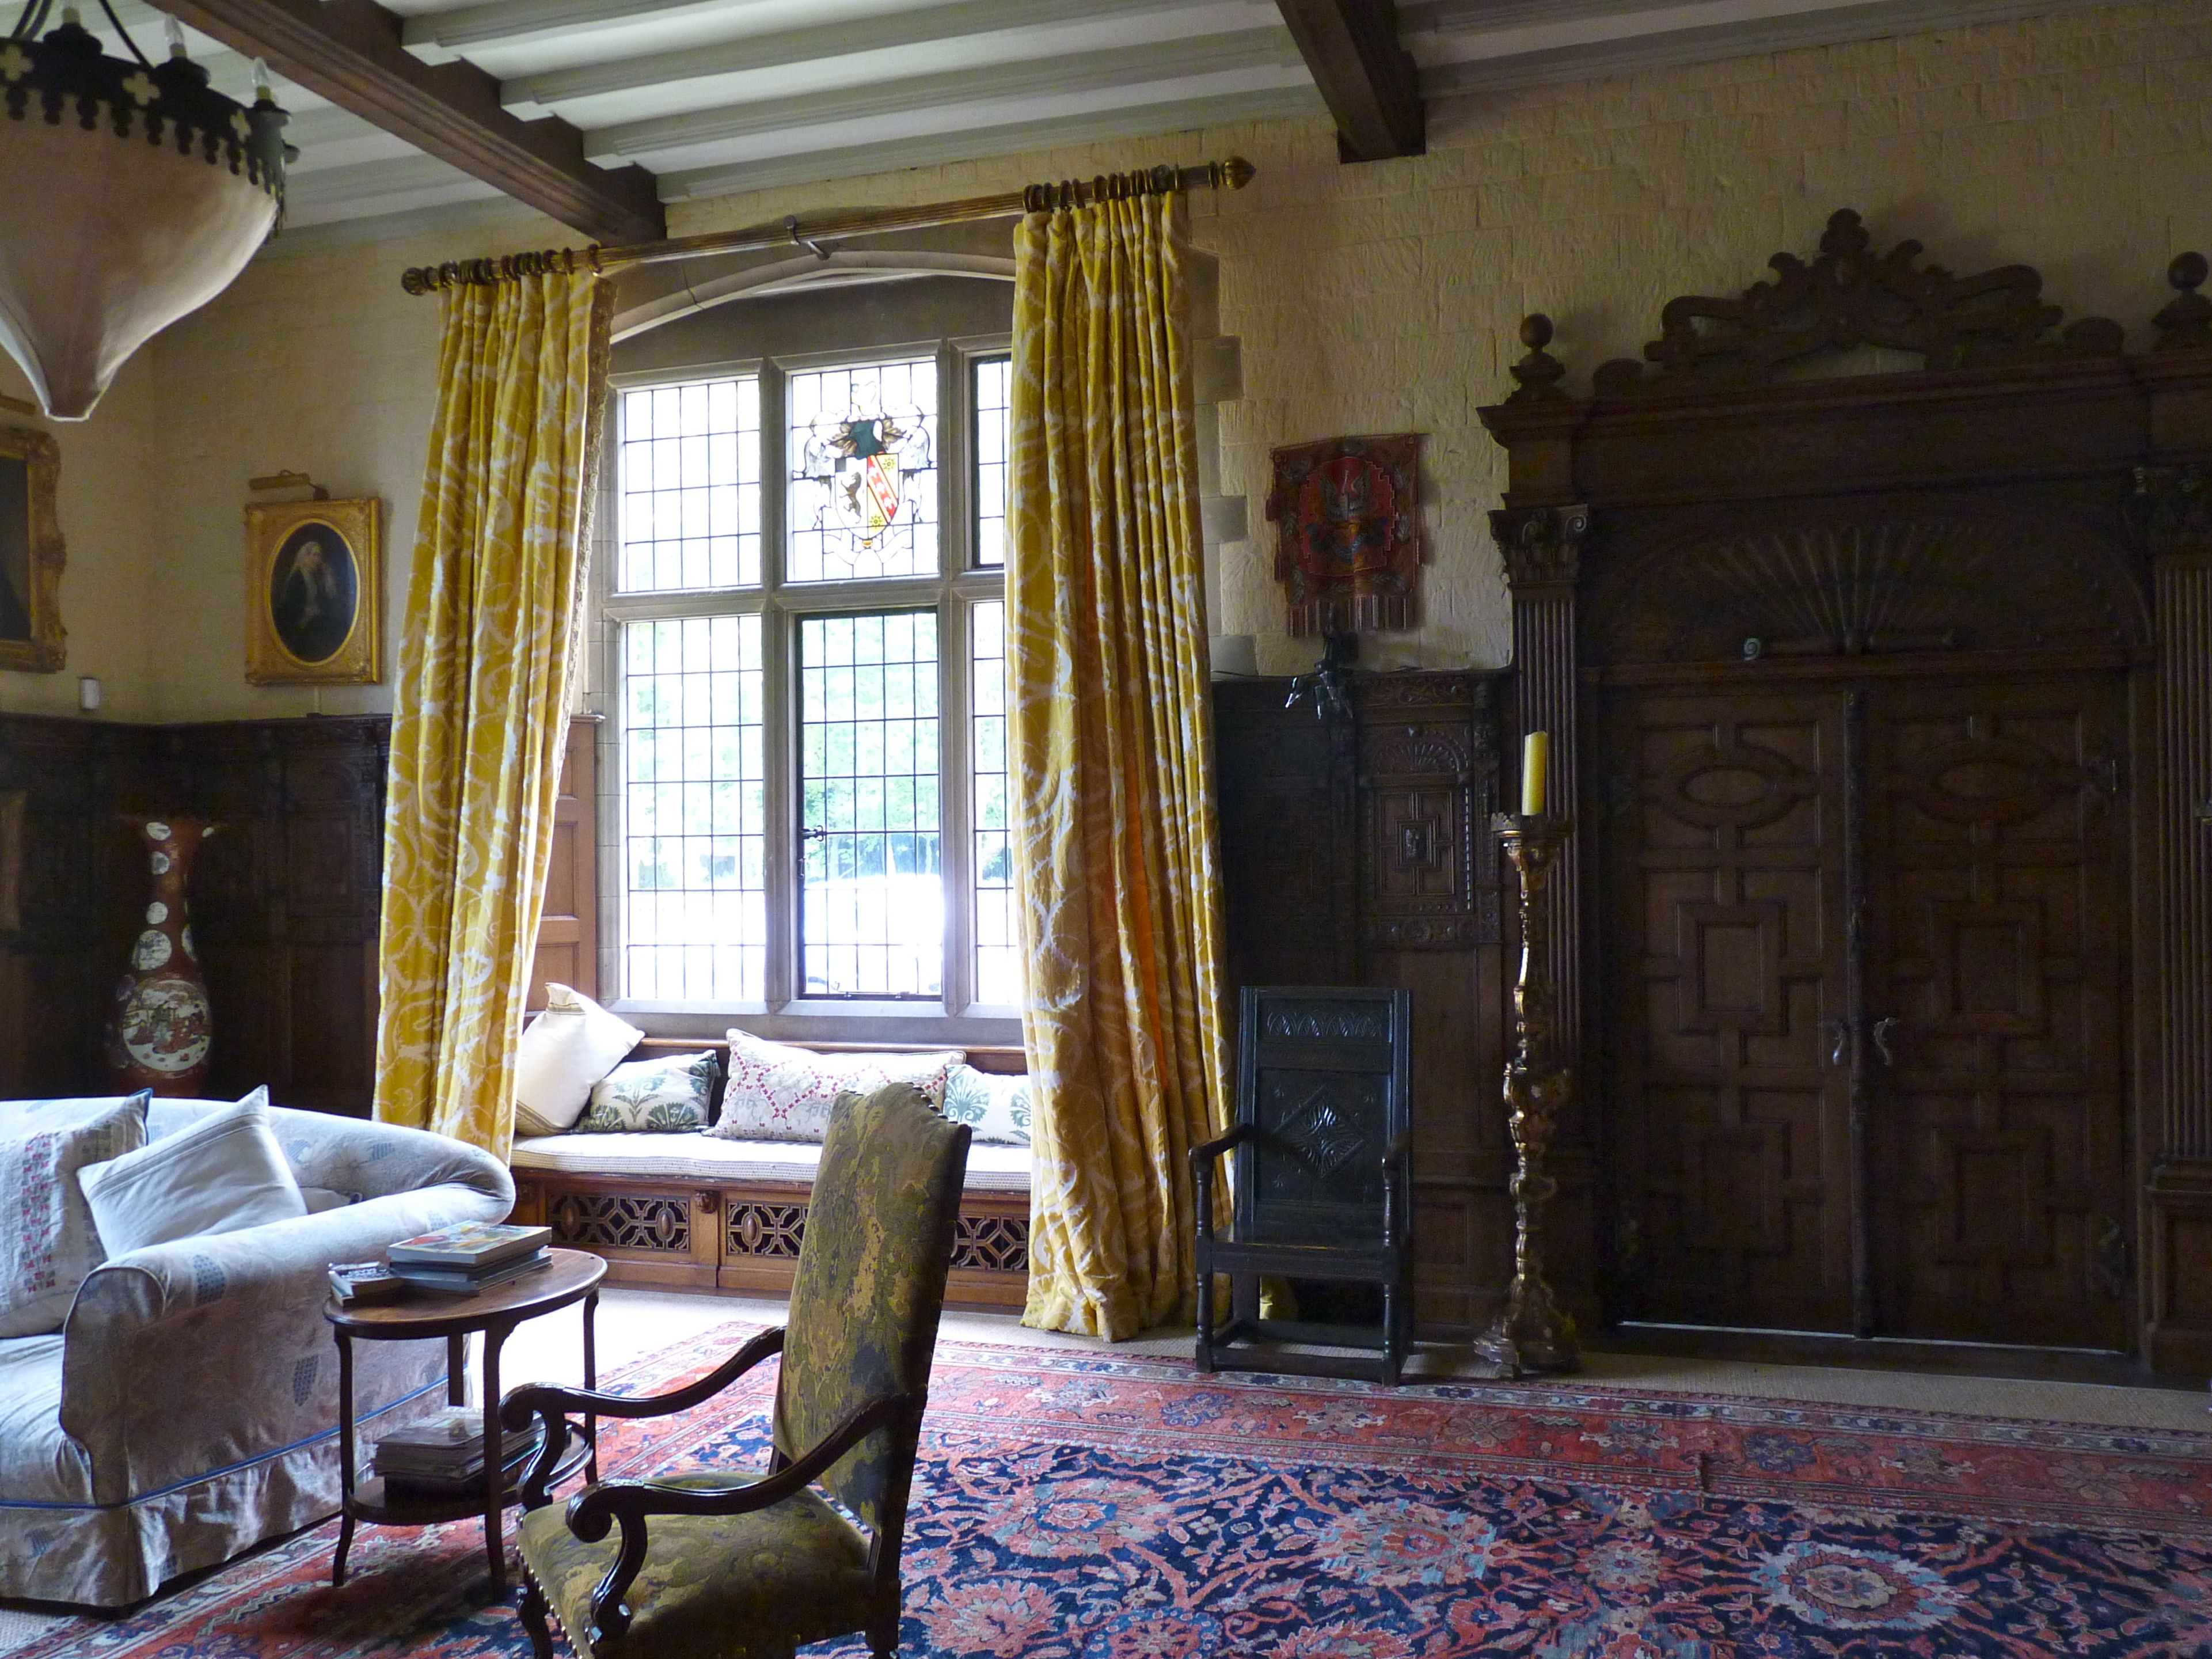 English country home interiors  Pg   For the Home  Pinterest  House art